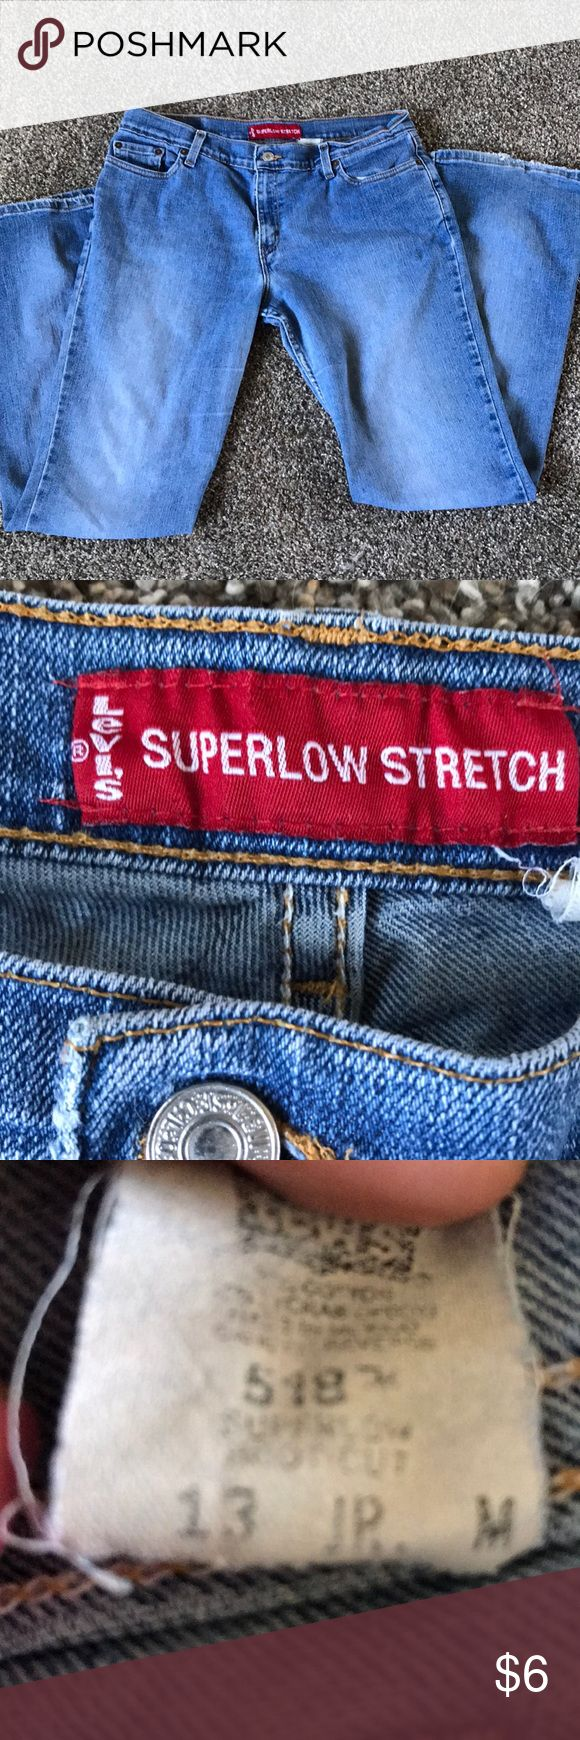 Vintage Levi's jeans Well worn but so comfy Levi super low stretch jeans does have a hole below the butt in the right side side and has some ware between the legs but still really great jeans ..price reflex the condition Levi's Jeans Boot Cut